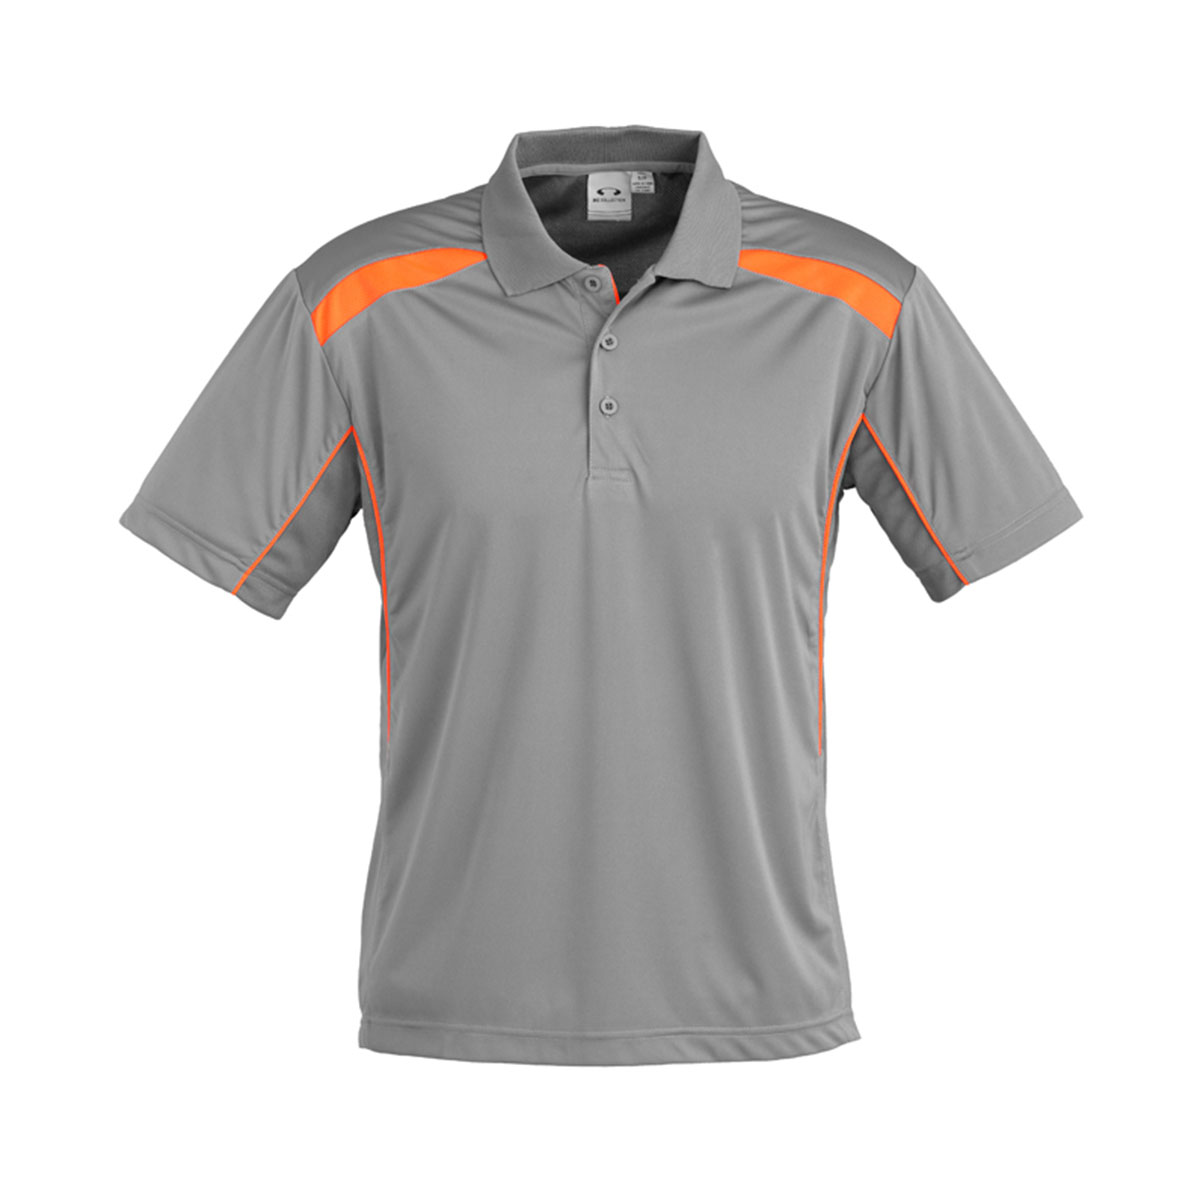 Mens United Short Sleeve Polo-Ash / Fluoro Orange